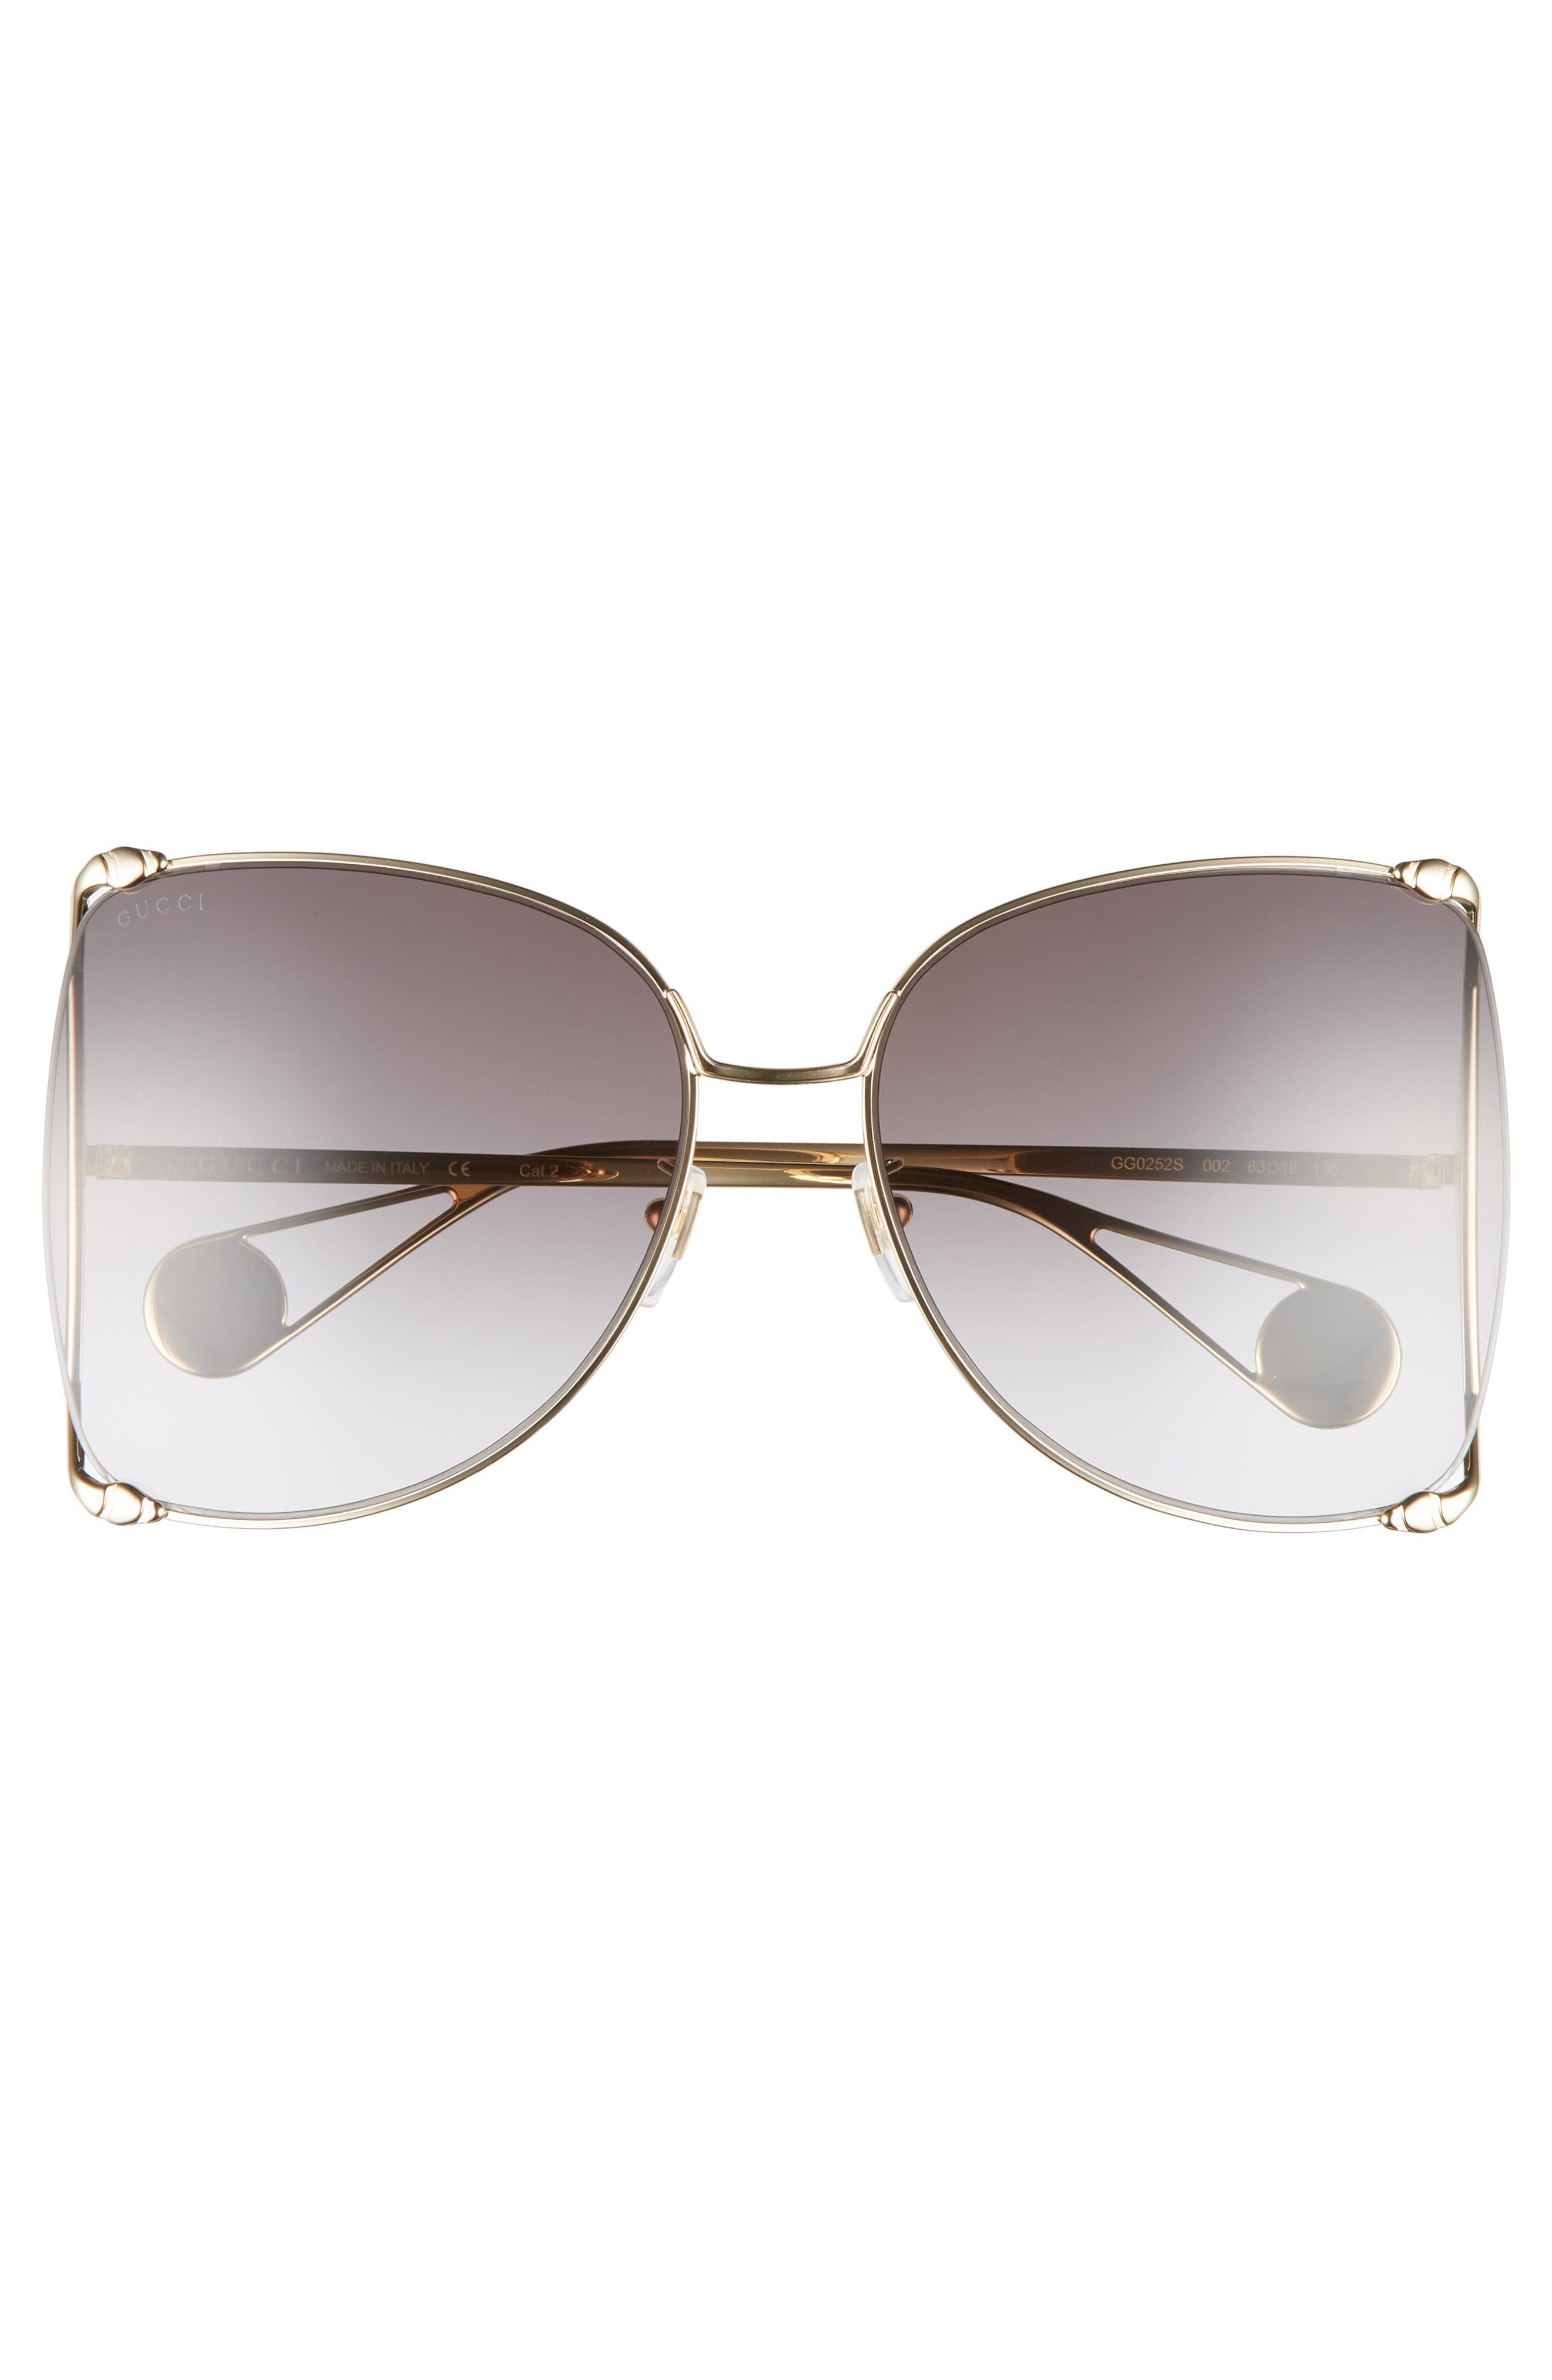 63mm Gradient Oversize Butterfly Sunglasses,                             Alternate thumbnail 3, color,                             GOLD/ GRADIENT GREY